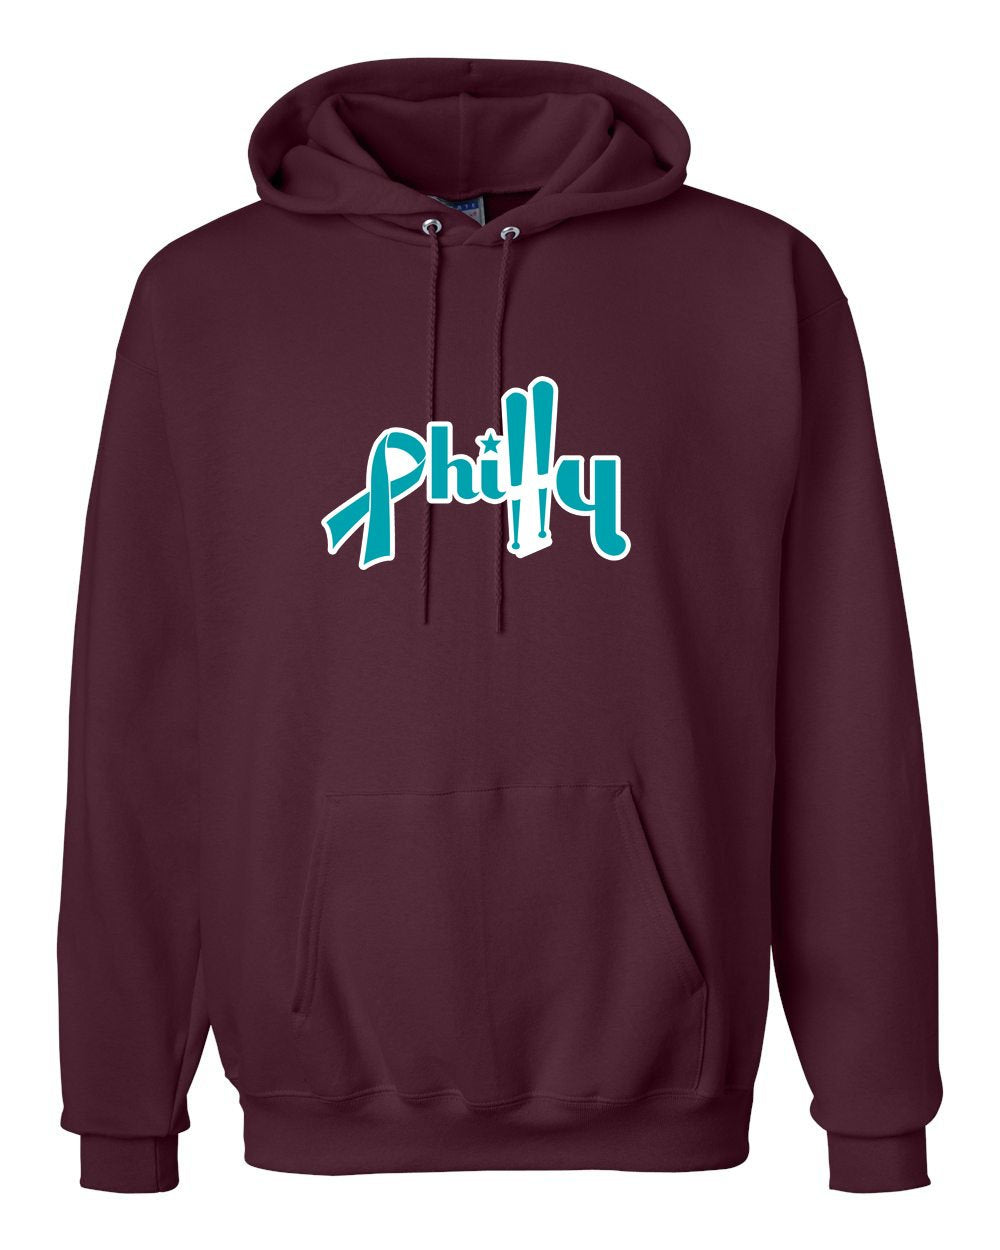 Ovarian Philly Hoodie